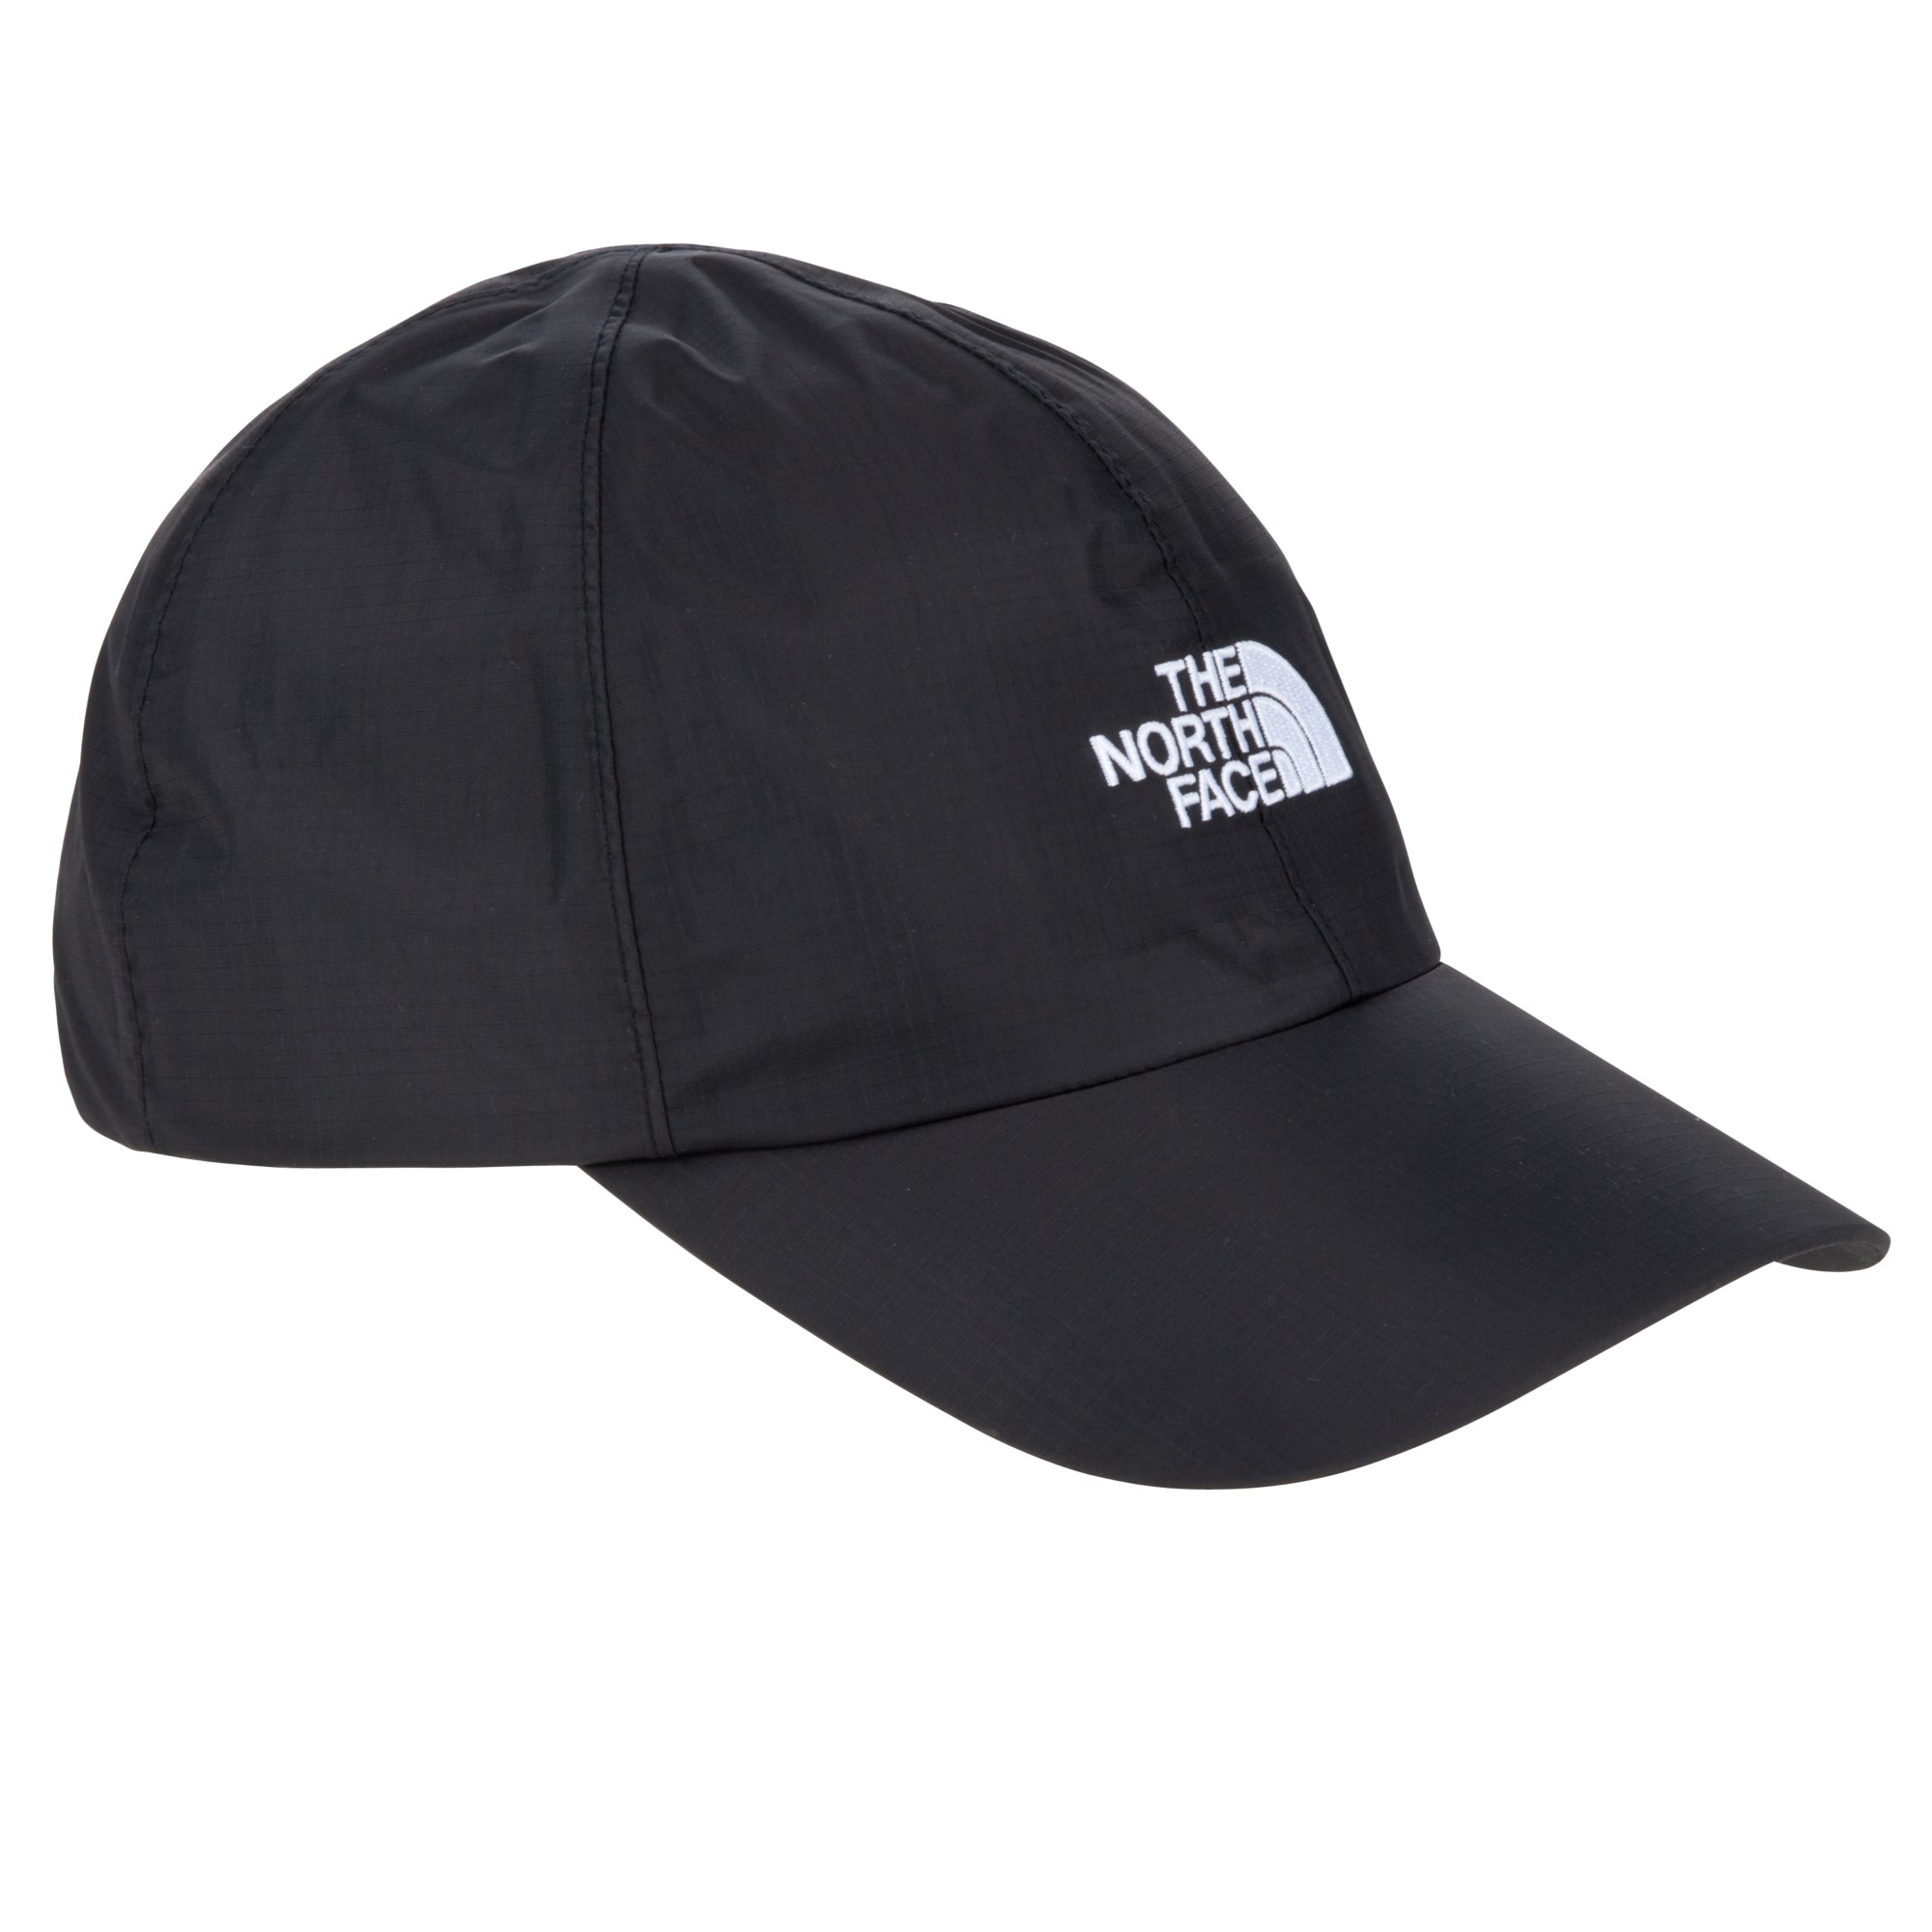 26141a0c1cf The North Face Dryvent Logo Hat in Black for Men - Lyst